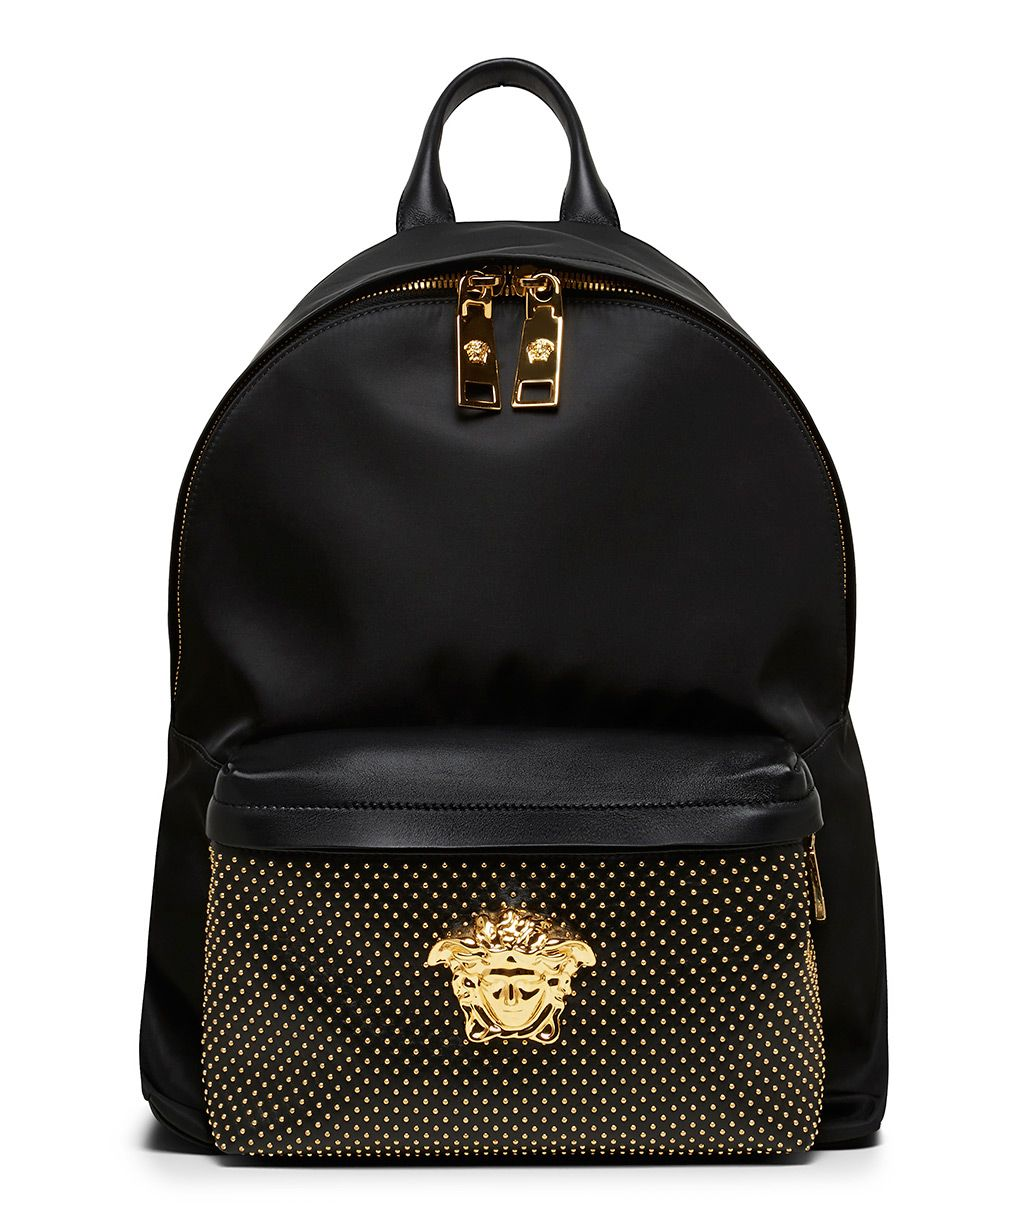 9d9fc0ede2 Versace Black Nappa Leather Backpack-SS15VERSA1 - Sneakerboy ...